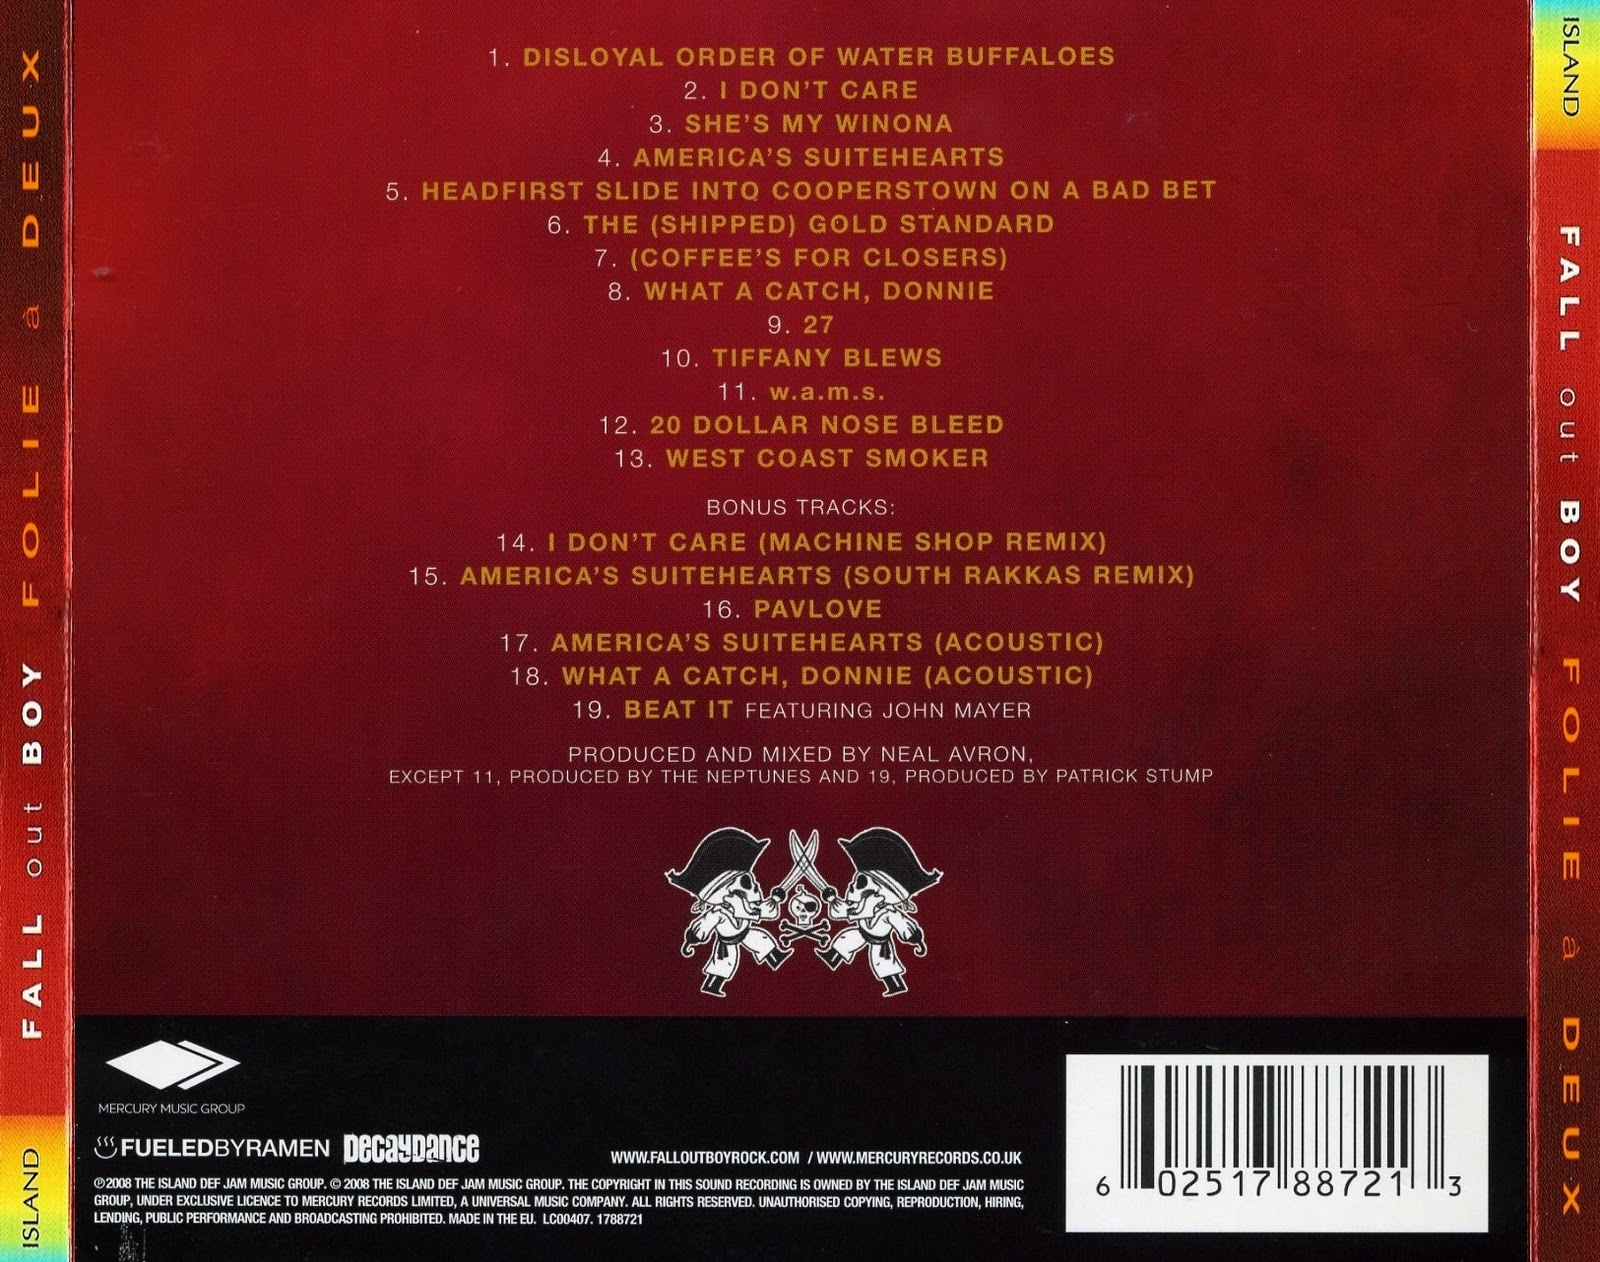 http://3.bp.blogspot.com/-mmrkN6FqefM/TWHFLuOOTJI/AAAAAAAAAn4/aQJizBOY0ec/s1600/-fall_out_boy_folie_a_deux_19_tracks_2008_retail_cd-back.jpg